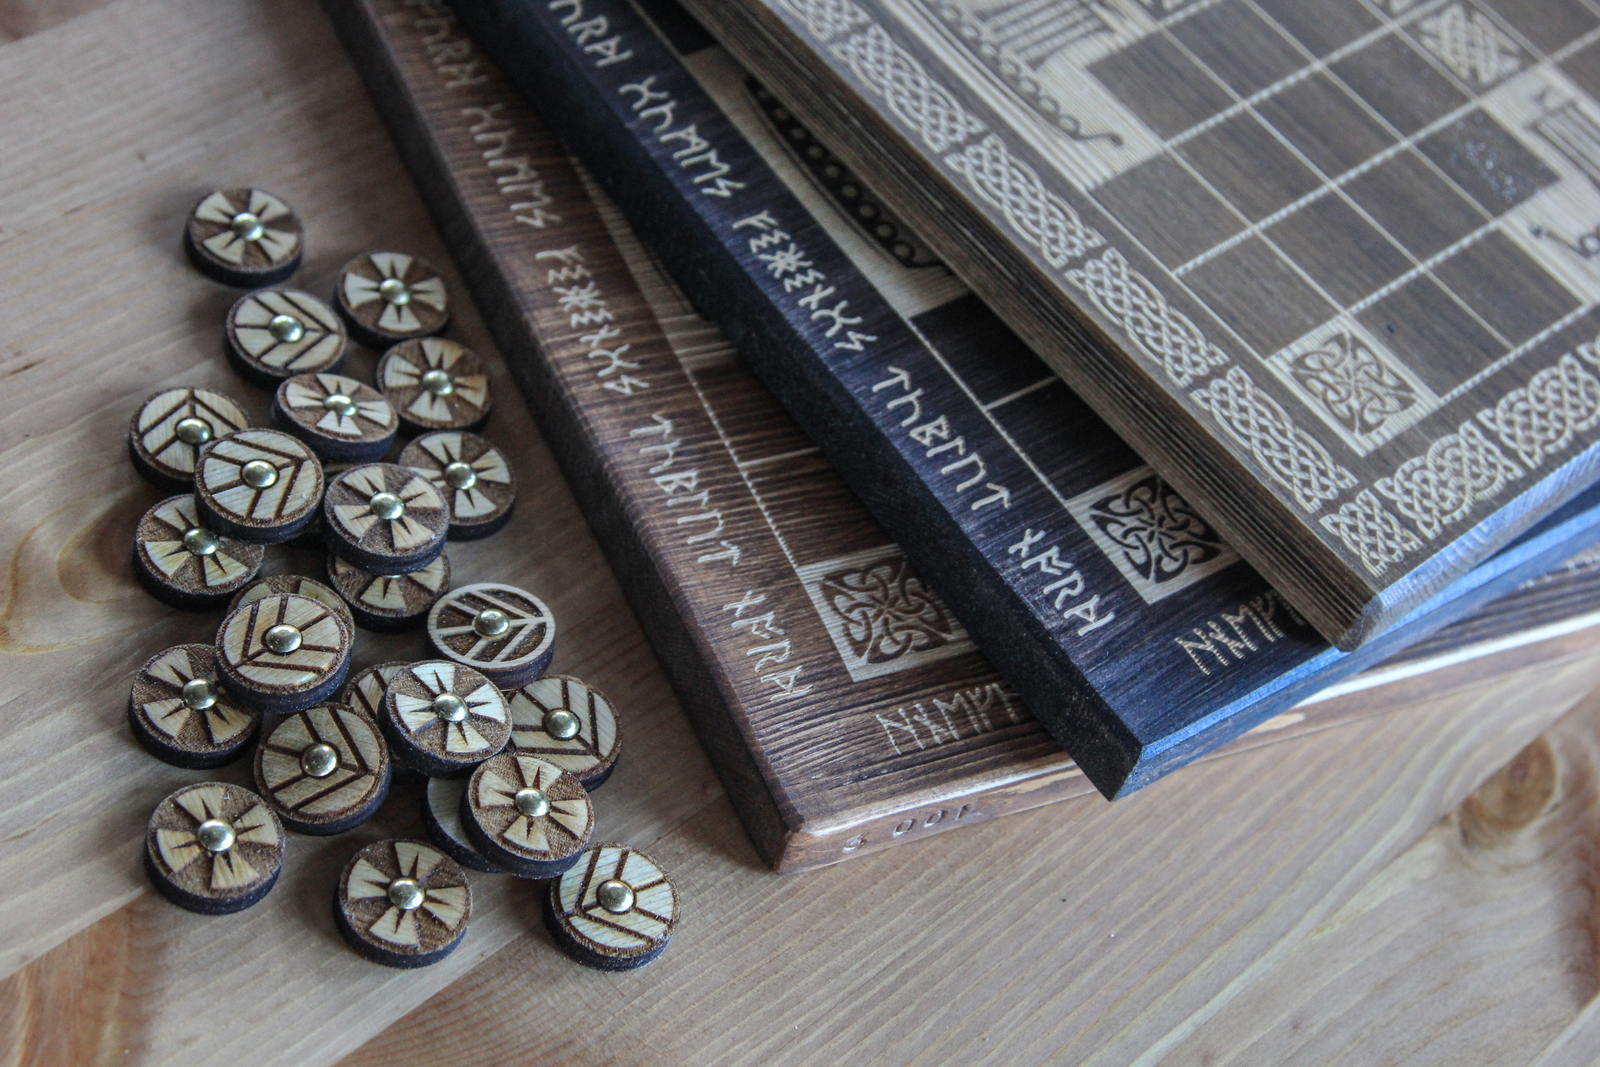 Tablut Hnefatafl game decorated with runes inspired by Vikings Show